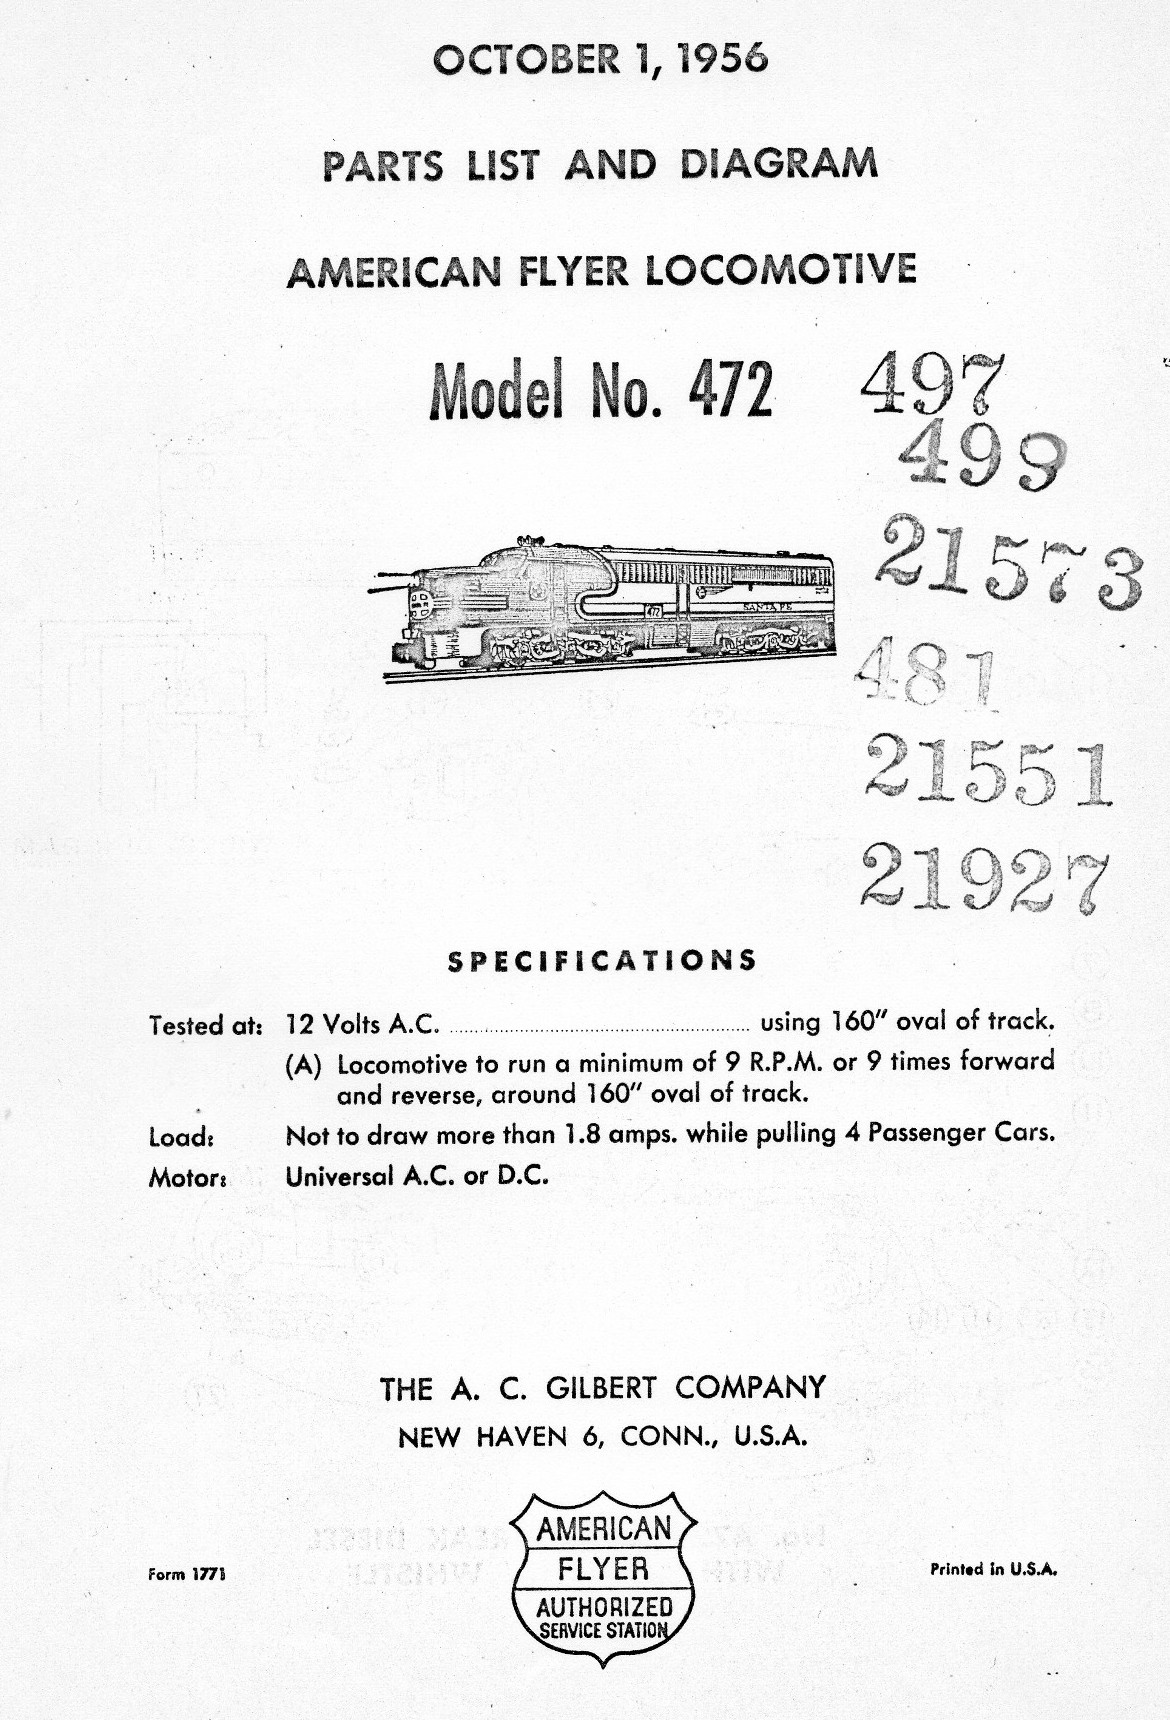 American Flyer Locomotive 472 Parts List & Diagram - Page 1